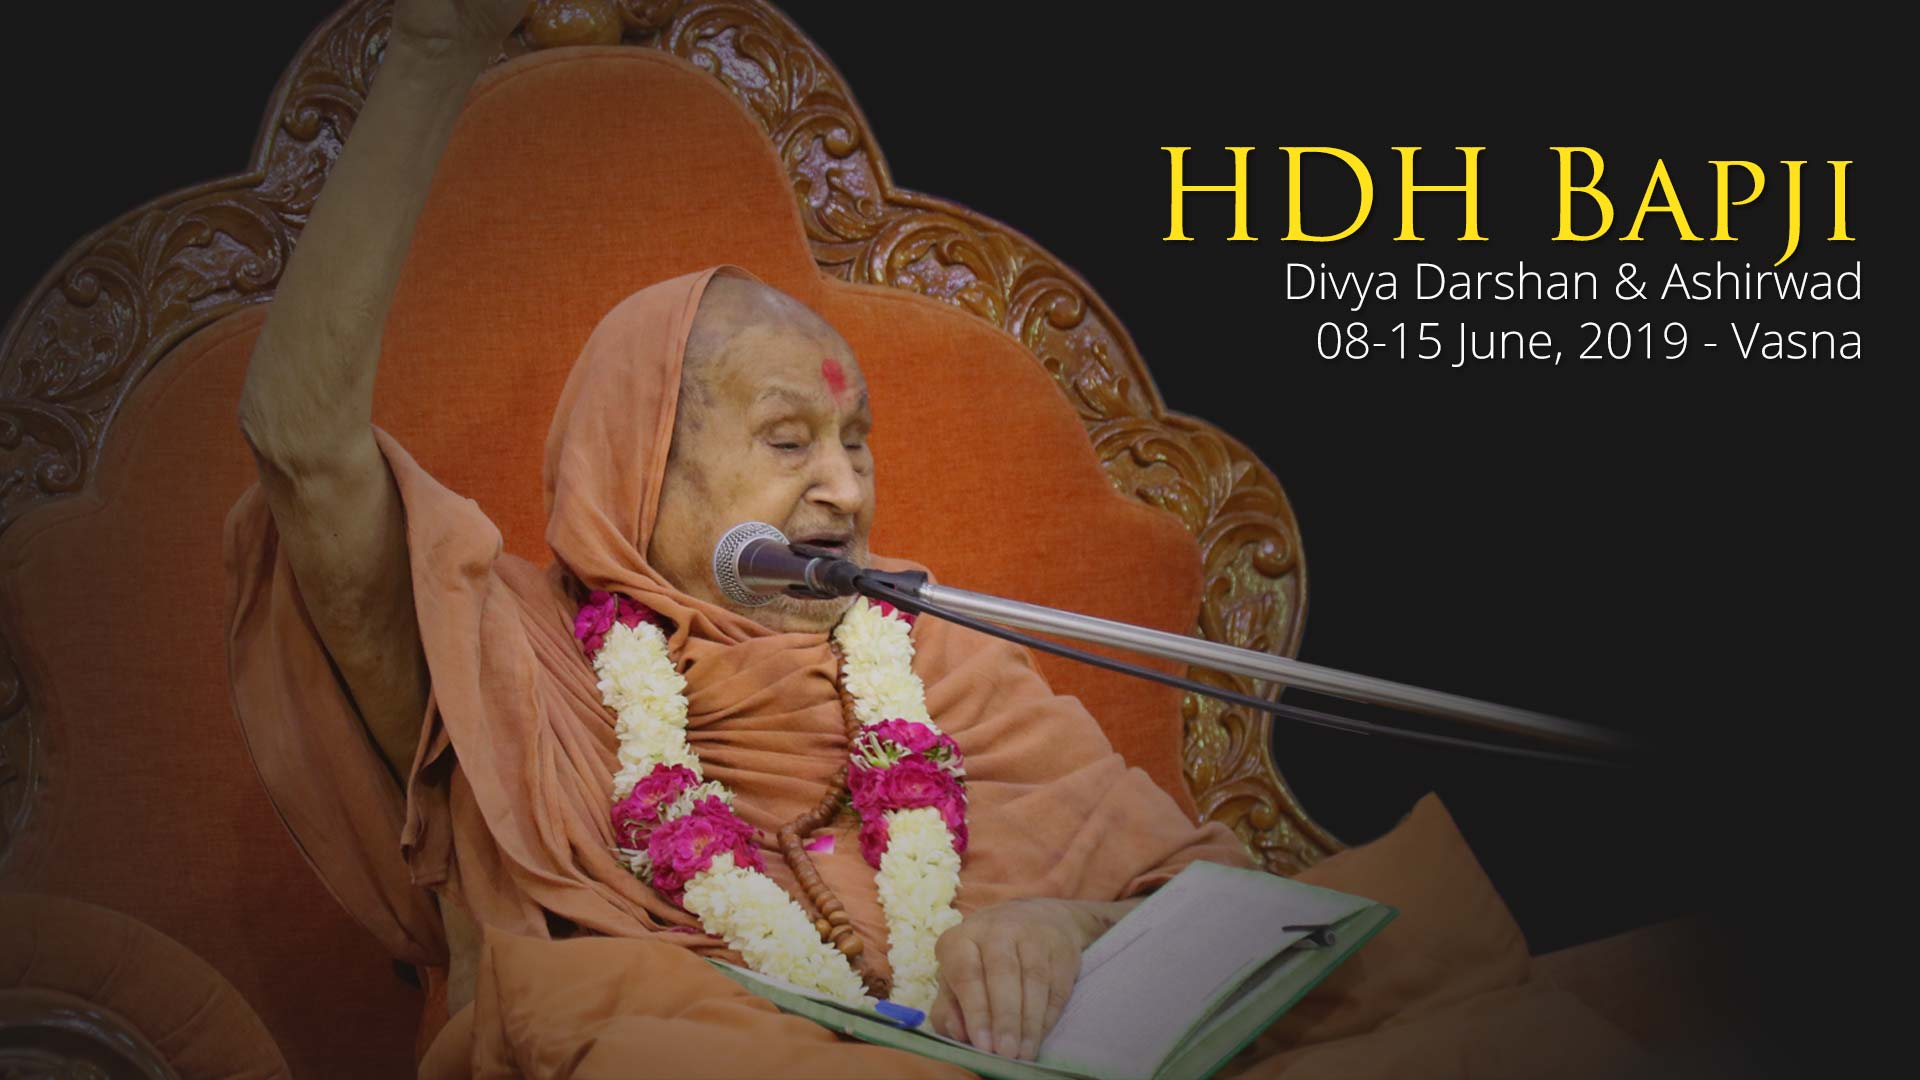 HDH Bapji Divya Darshan-Ashirwad | 08 to 15 June, 2019